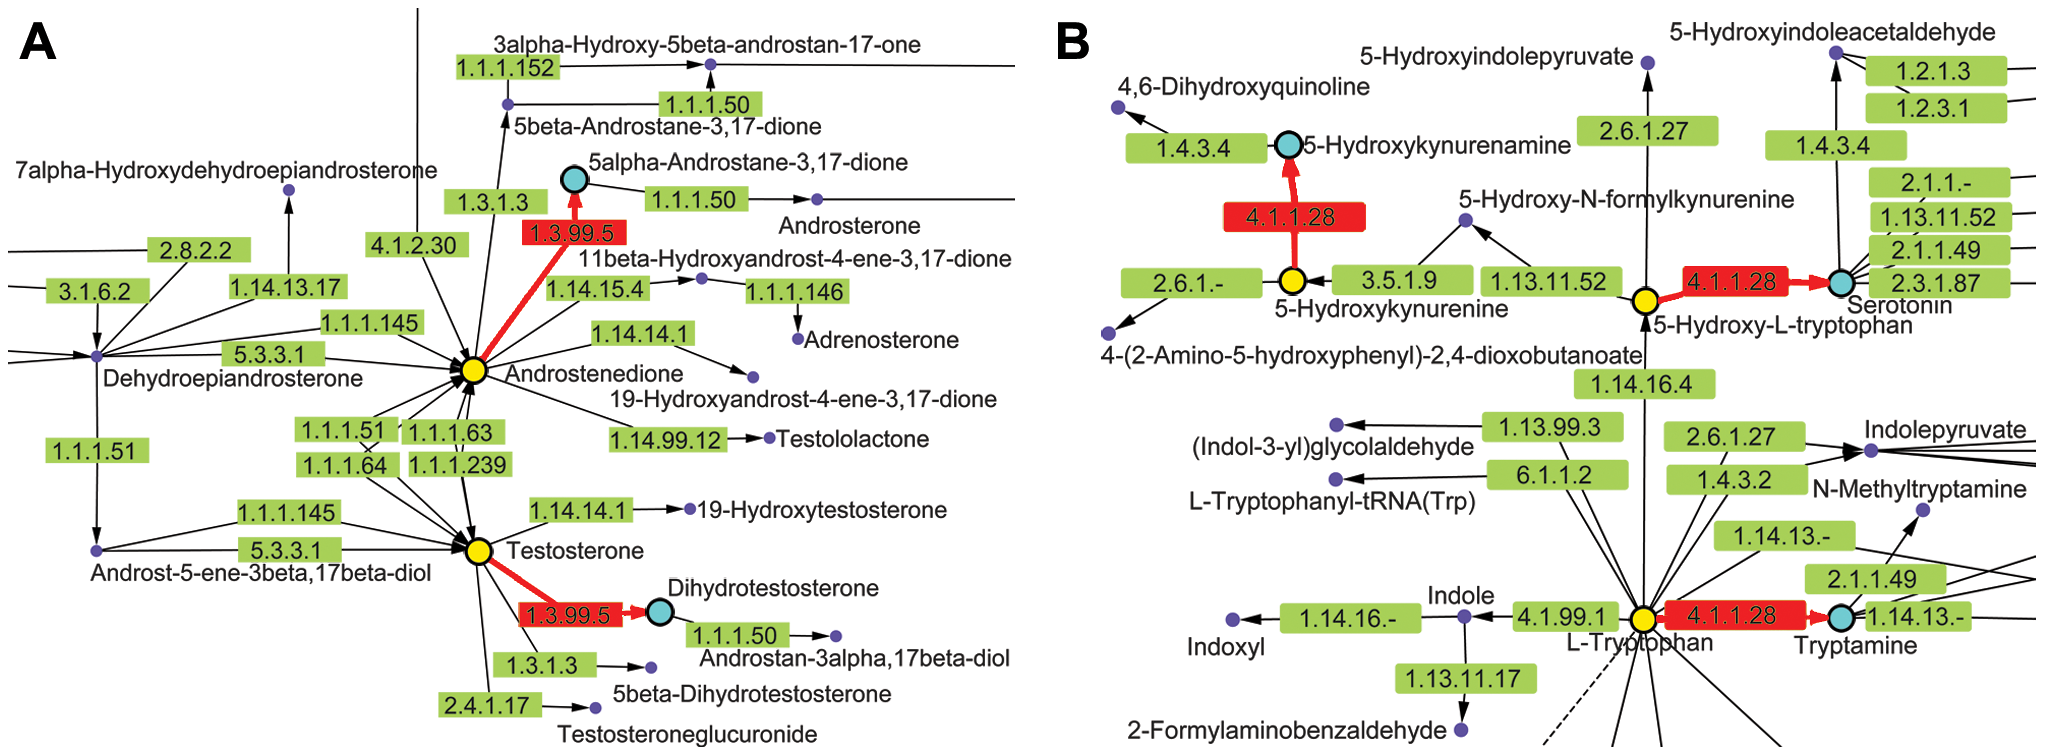 KEGG metabolic pathways containing chokepoint reactions for which a drug-like compound showed activity.